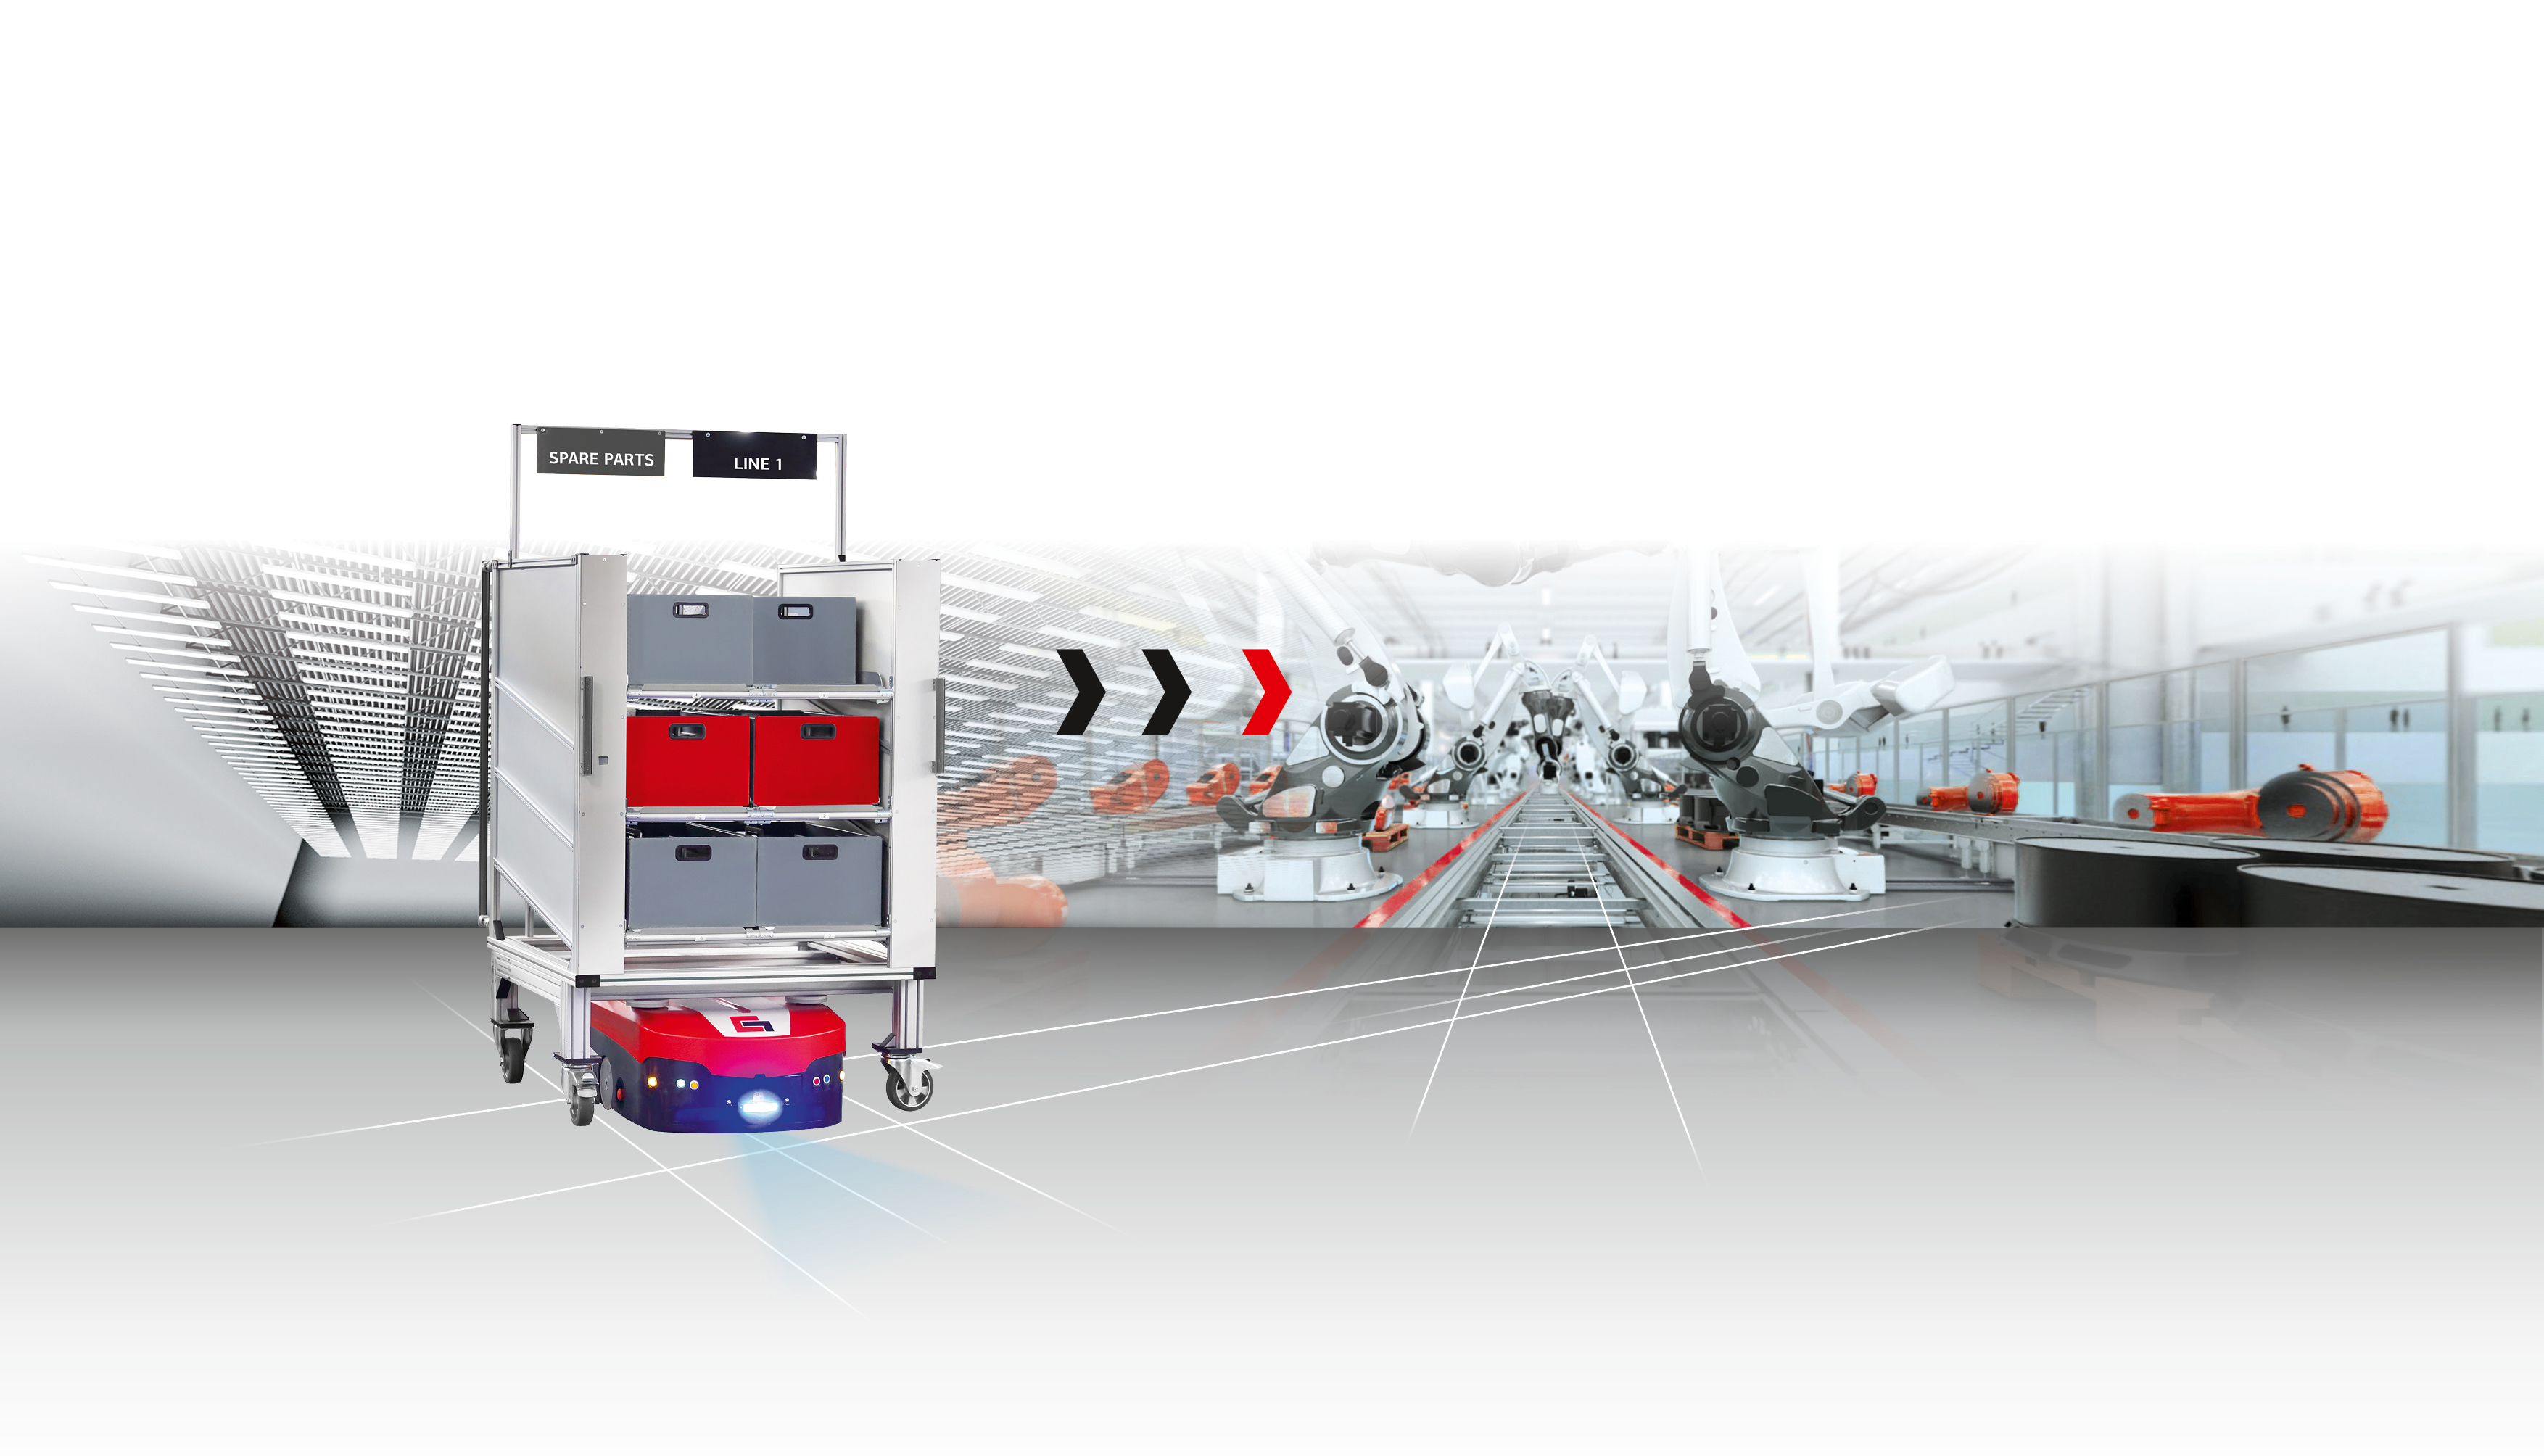 Driverless transport systems for in-house parts transport